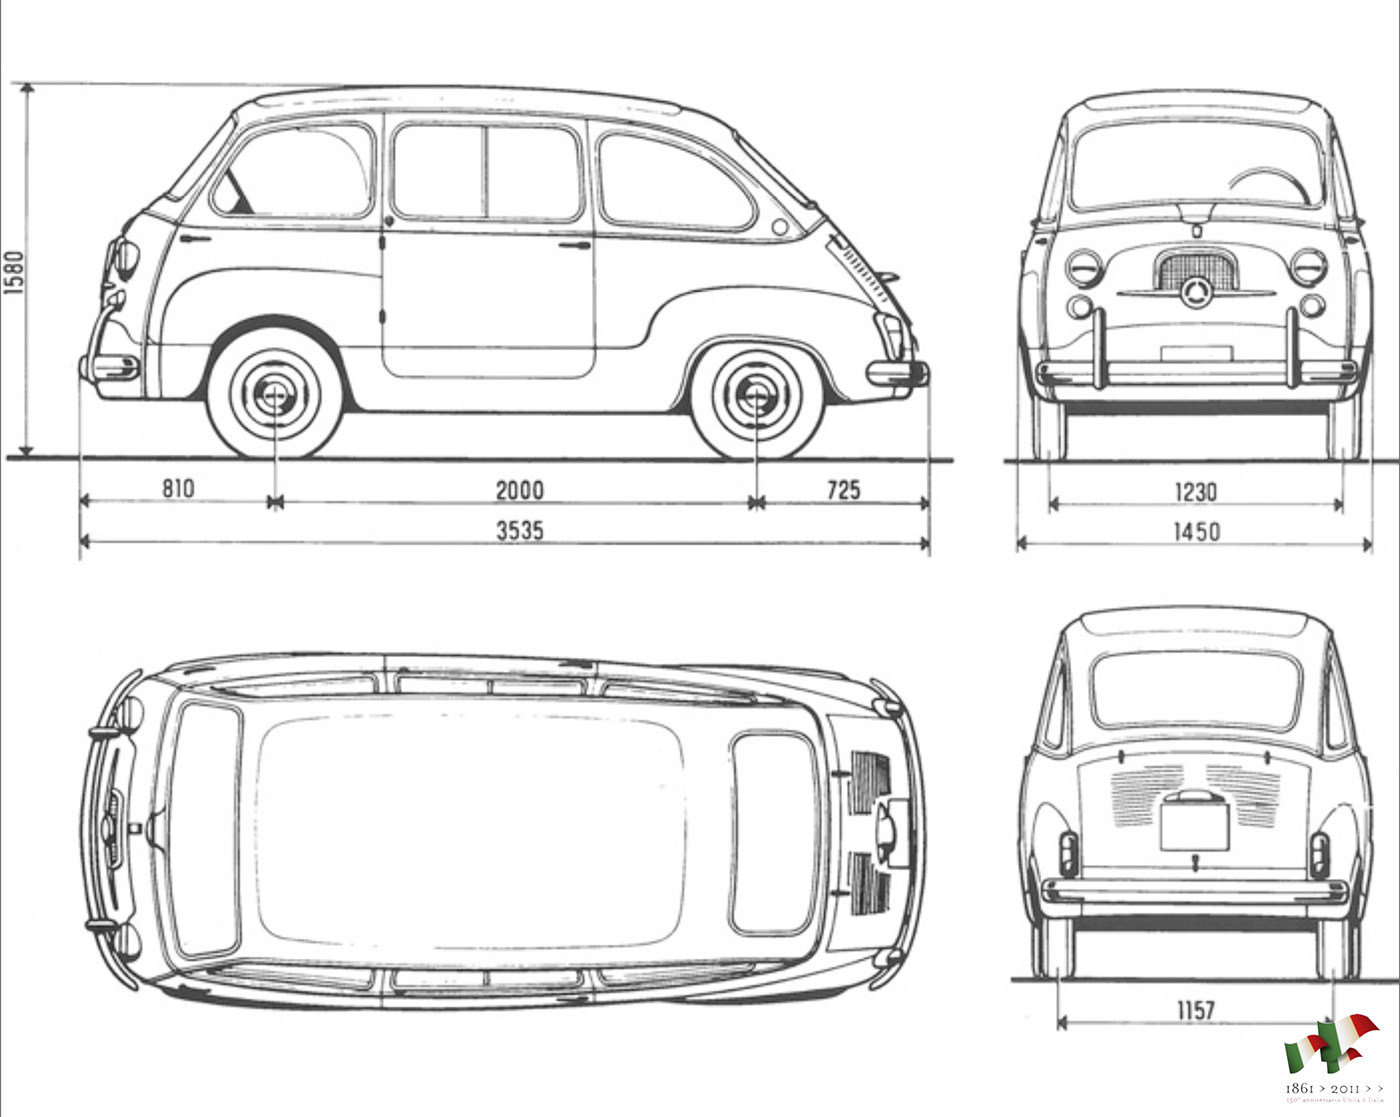 Fiat Multipla ''Vorto'' (Redesign) on Behance